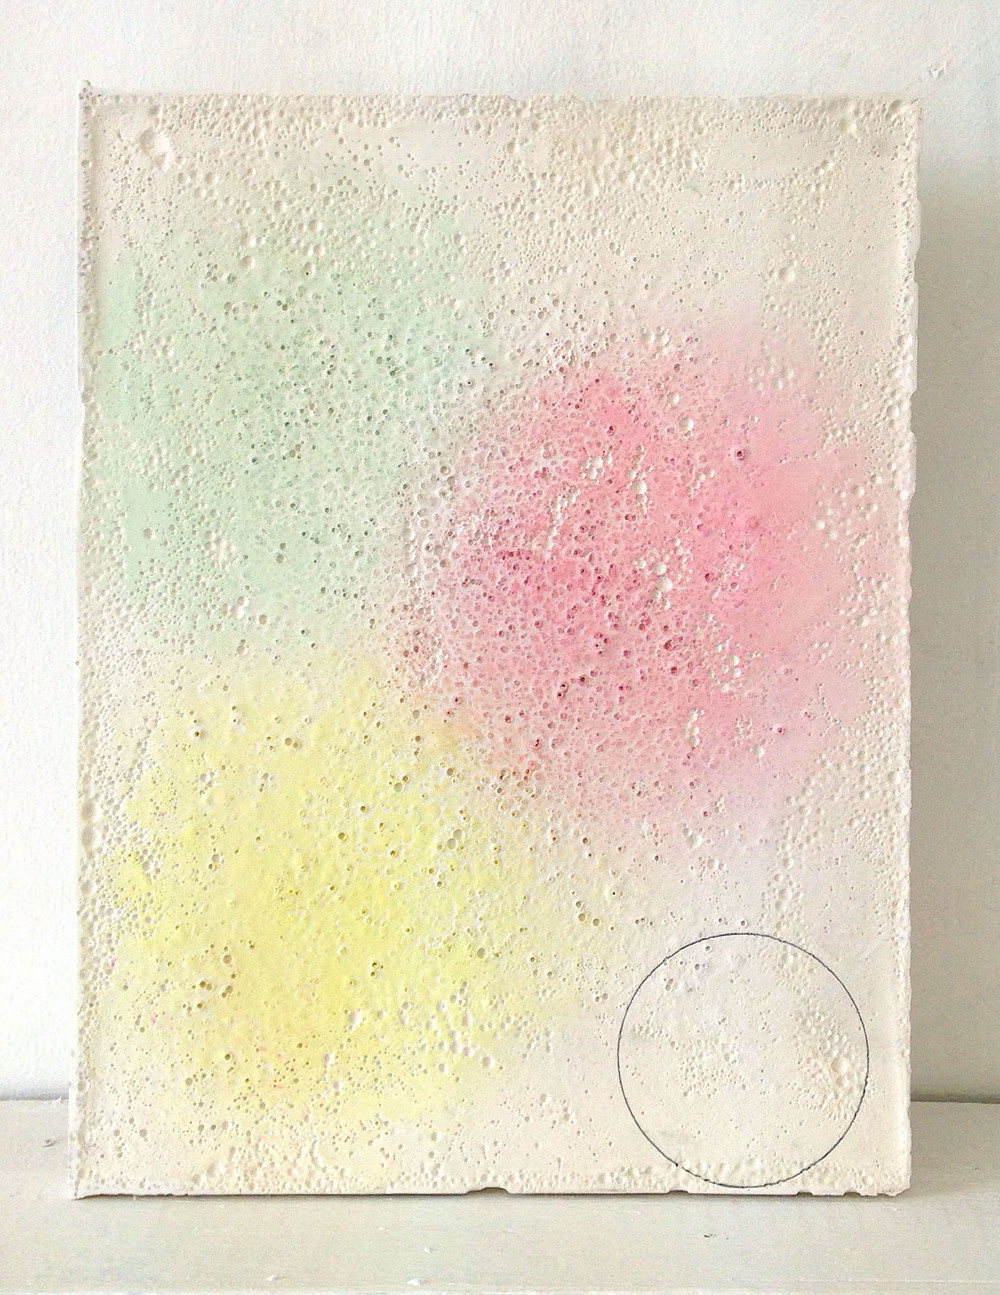 My Heart, 2015, Pencil, pastel and plaster, 29.5 x 22.5 cm